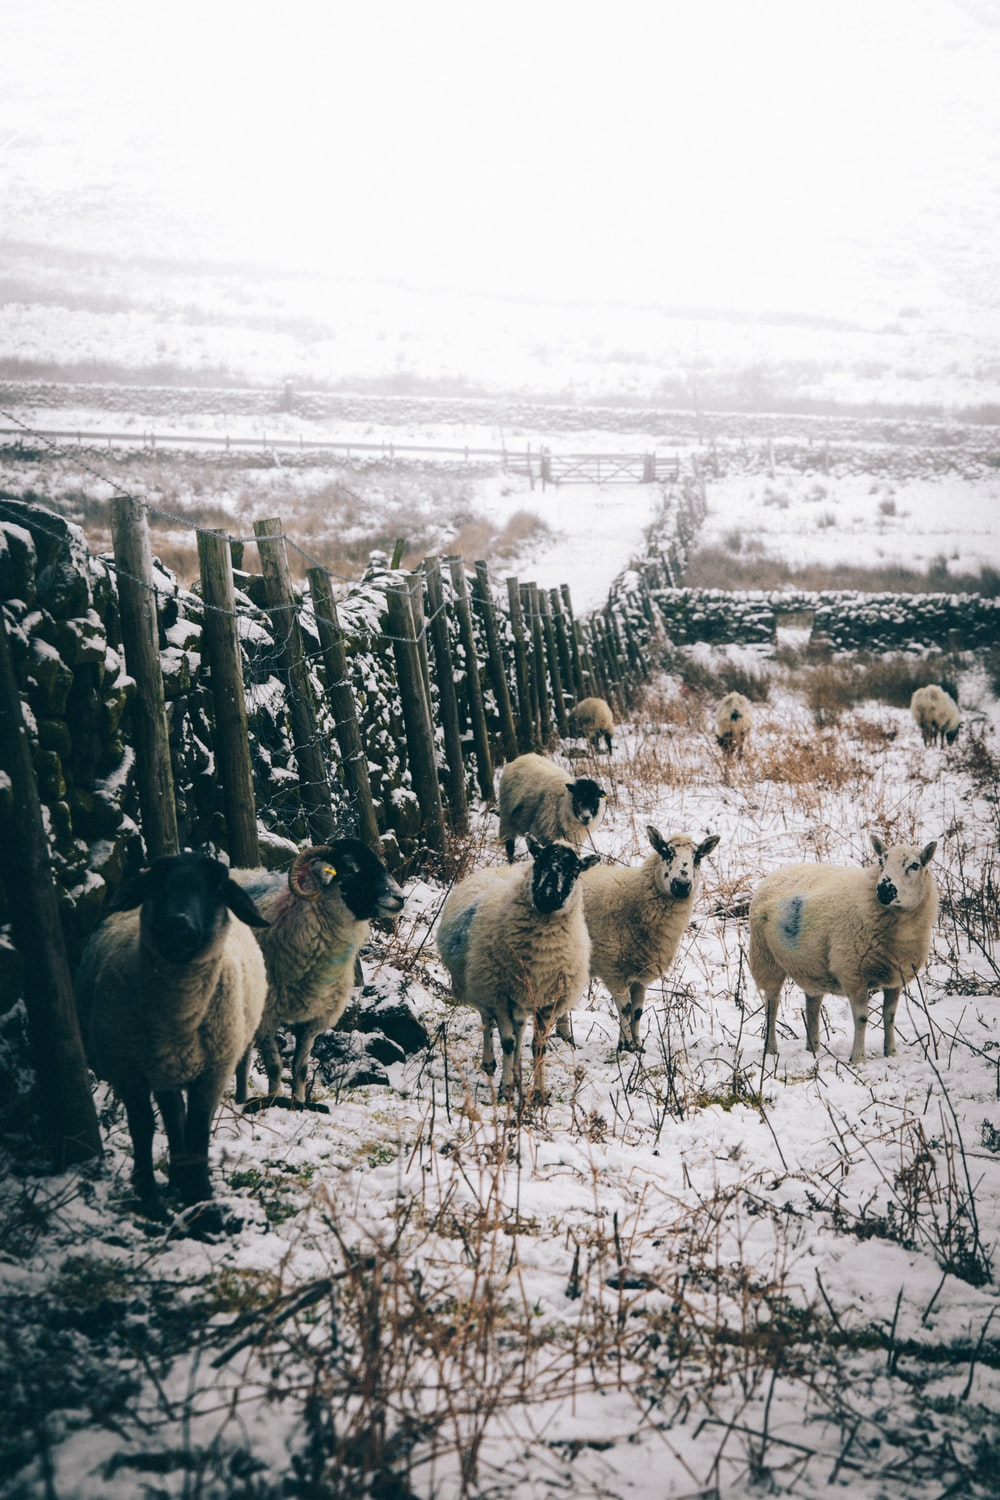 several white sheep and rams